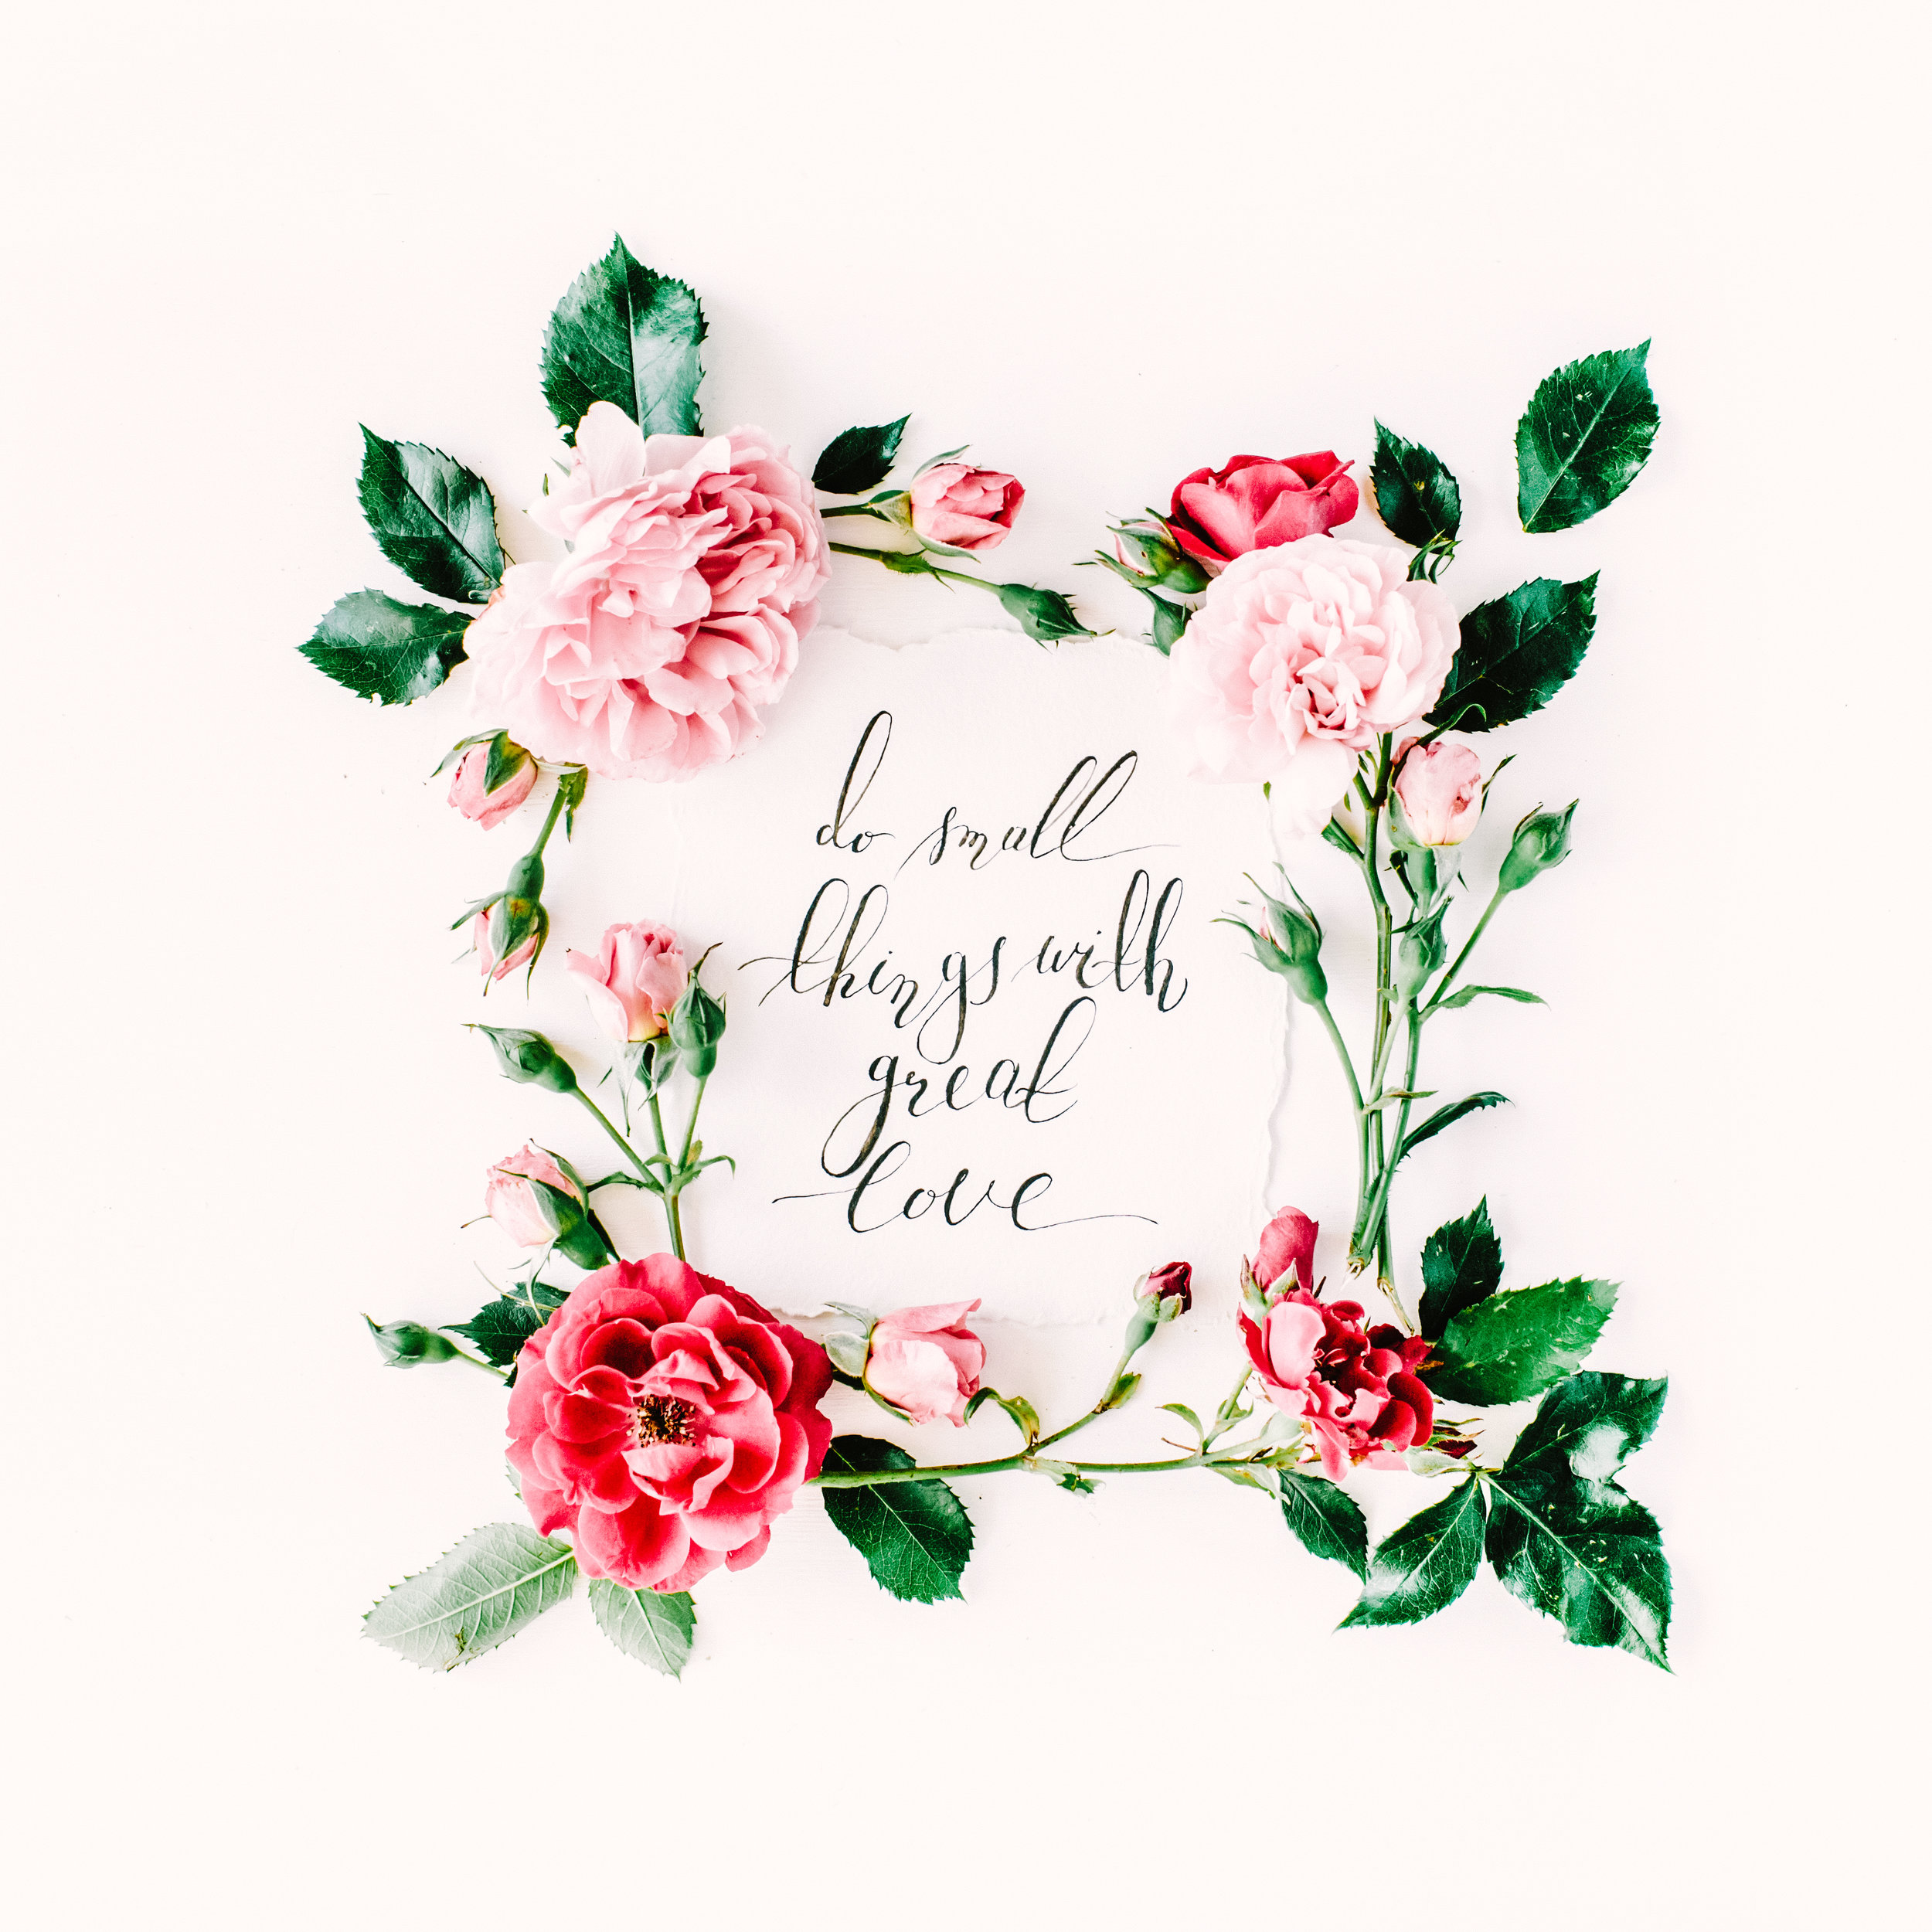 """inspirational quote """"what is done in love is done well"""" written in calligraphy style on paper with pink red roses chamomiles and leaves isolated on white background. Flat lay top view"""